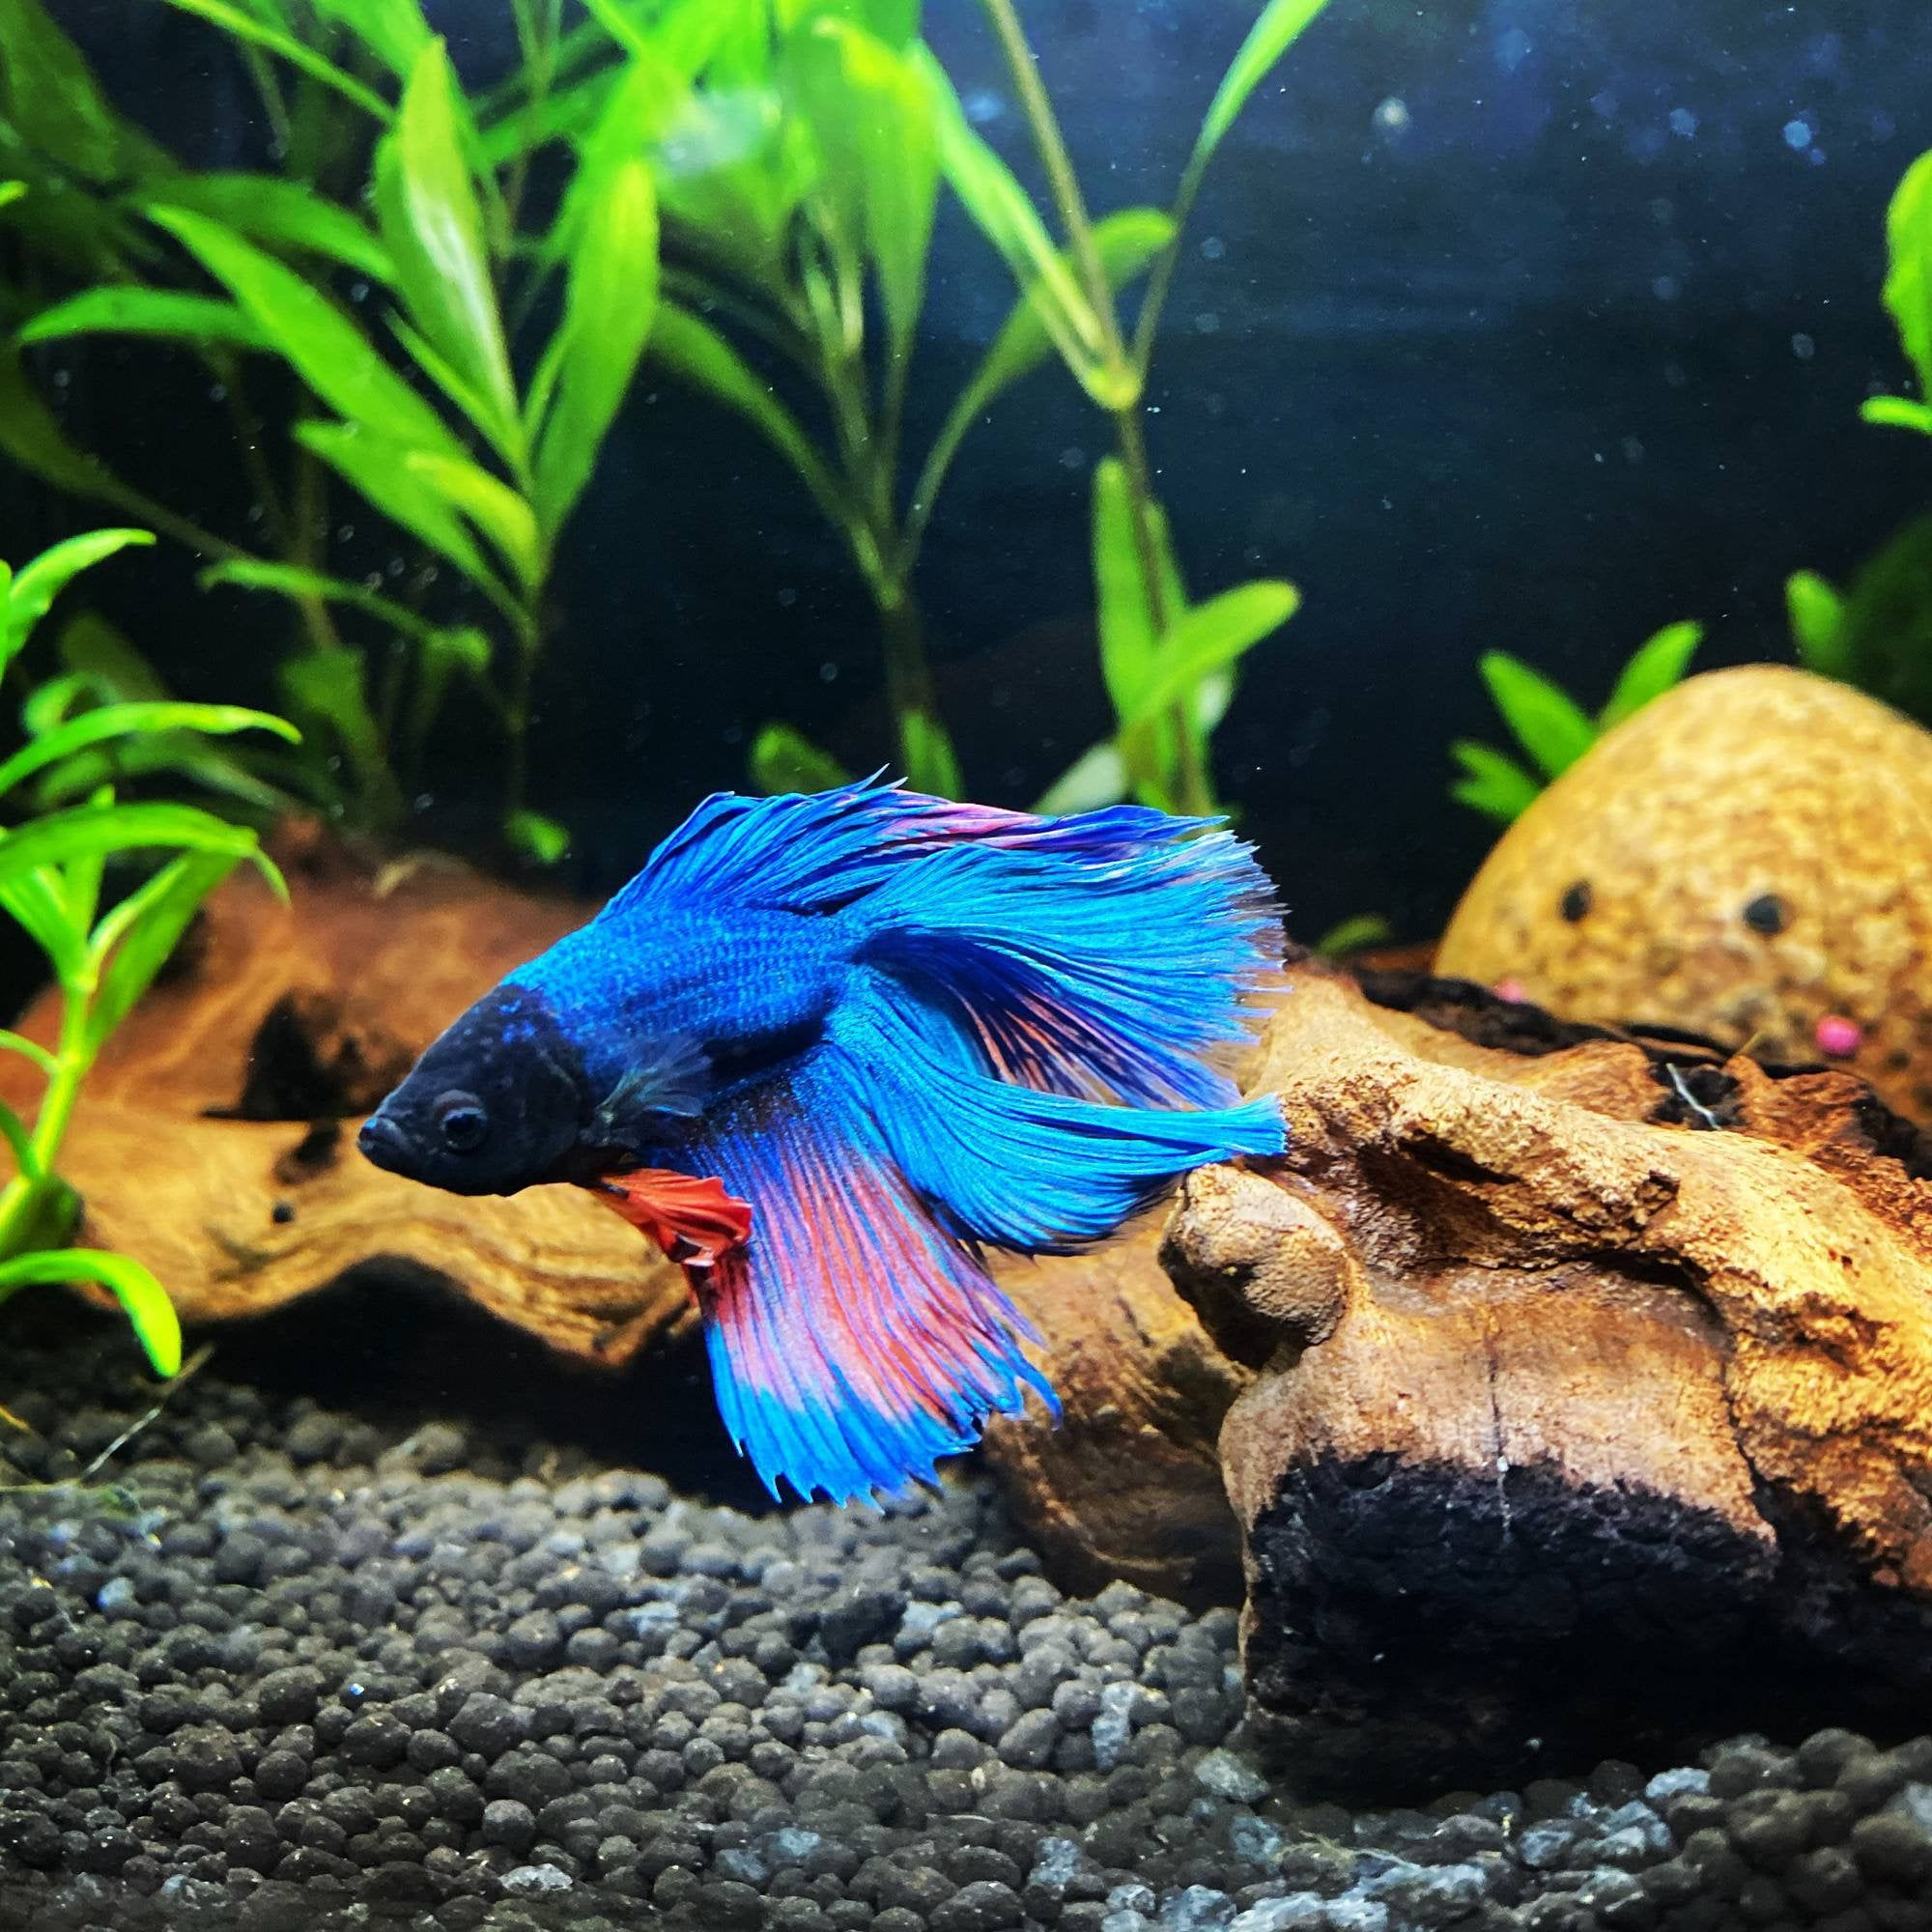 Betta Fish Getting Good Amount Of Fin Regrowth Now I Have Removed My Rocks In 2020 Betta Fish Betta Fish